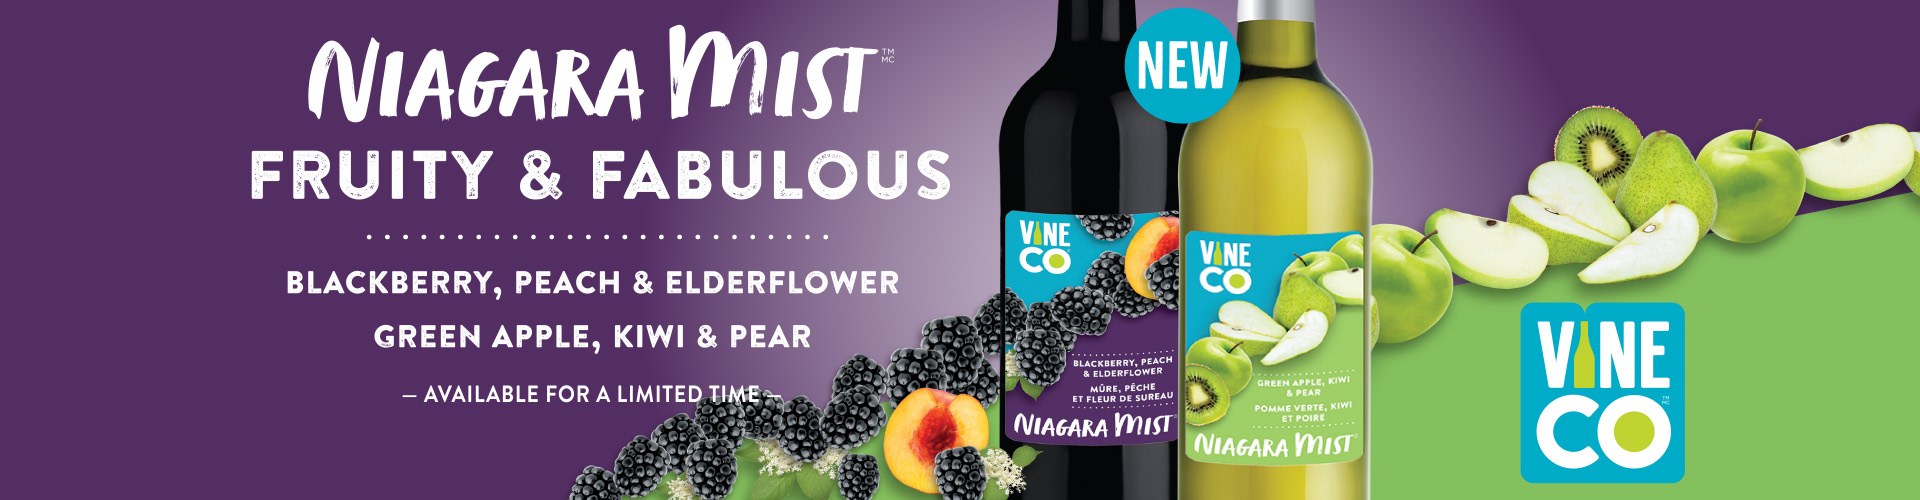 Niagara Mist New Release - Fruity & Fabulous